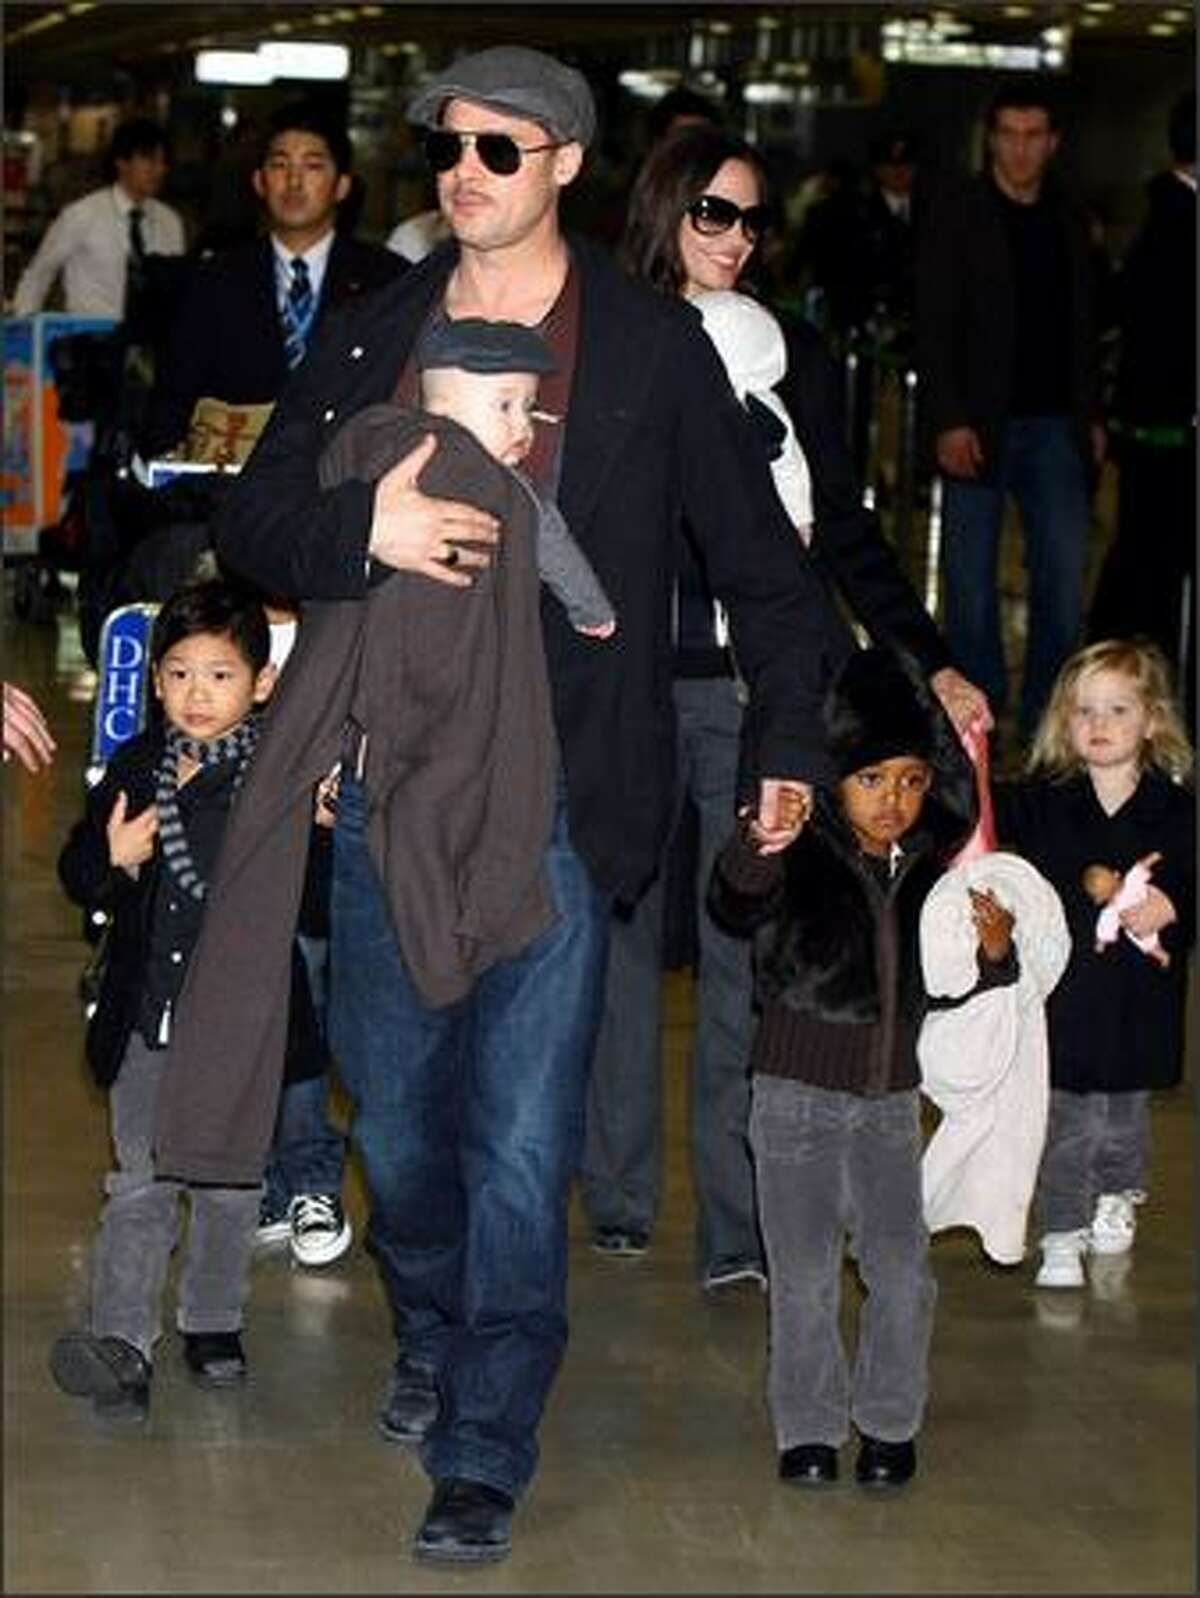 Actor Brad Pitt and Angelina Jolie arrive at Narita International Airport with their children (L to R) Pax Thien, Knox, Zahara and Shiloh in Narita, Chiba, Japan. Brad is visiting Japan to promote his film